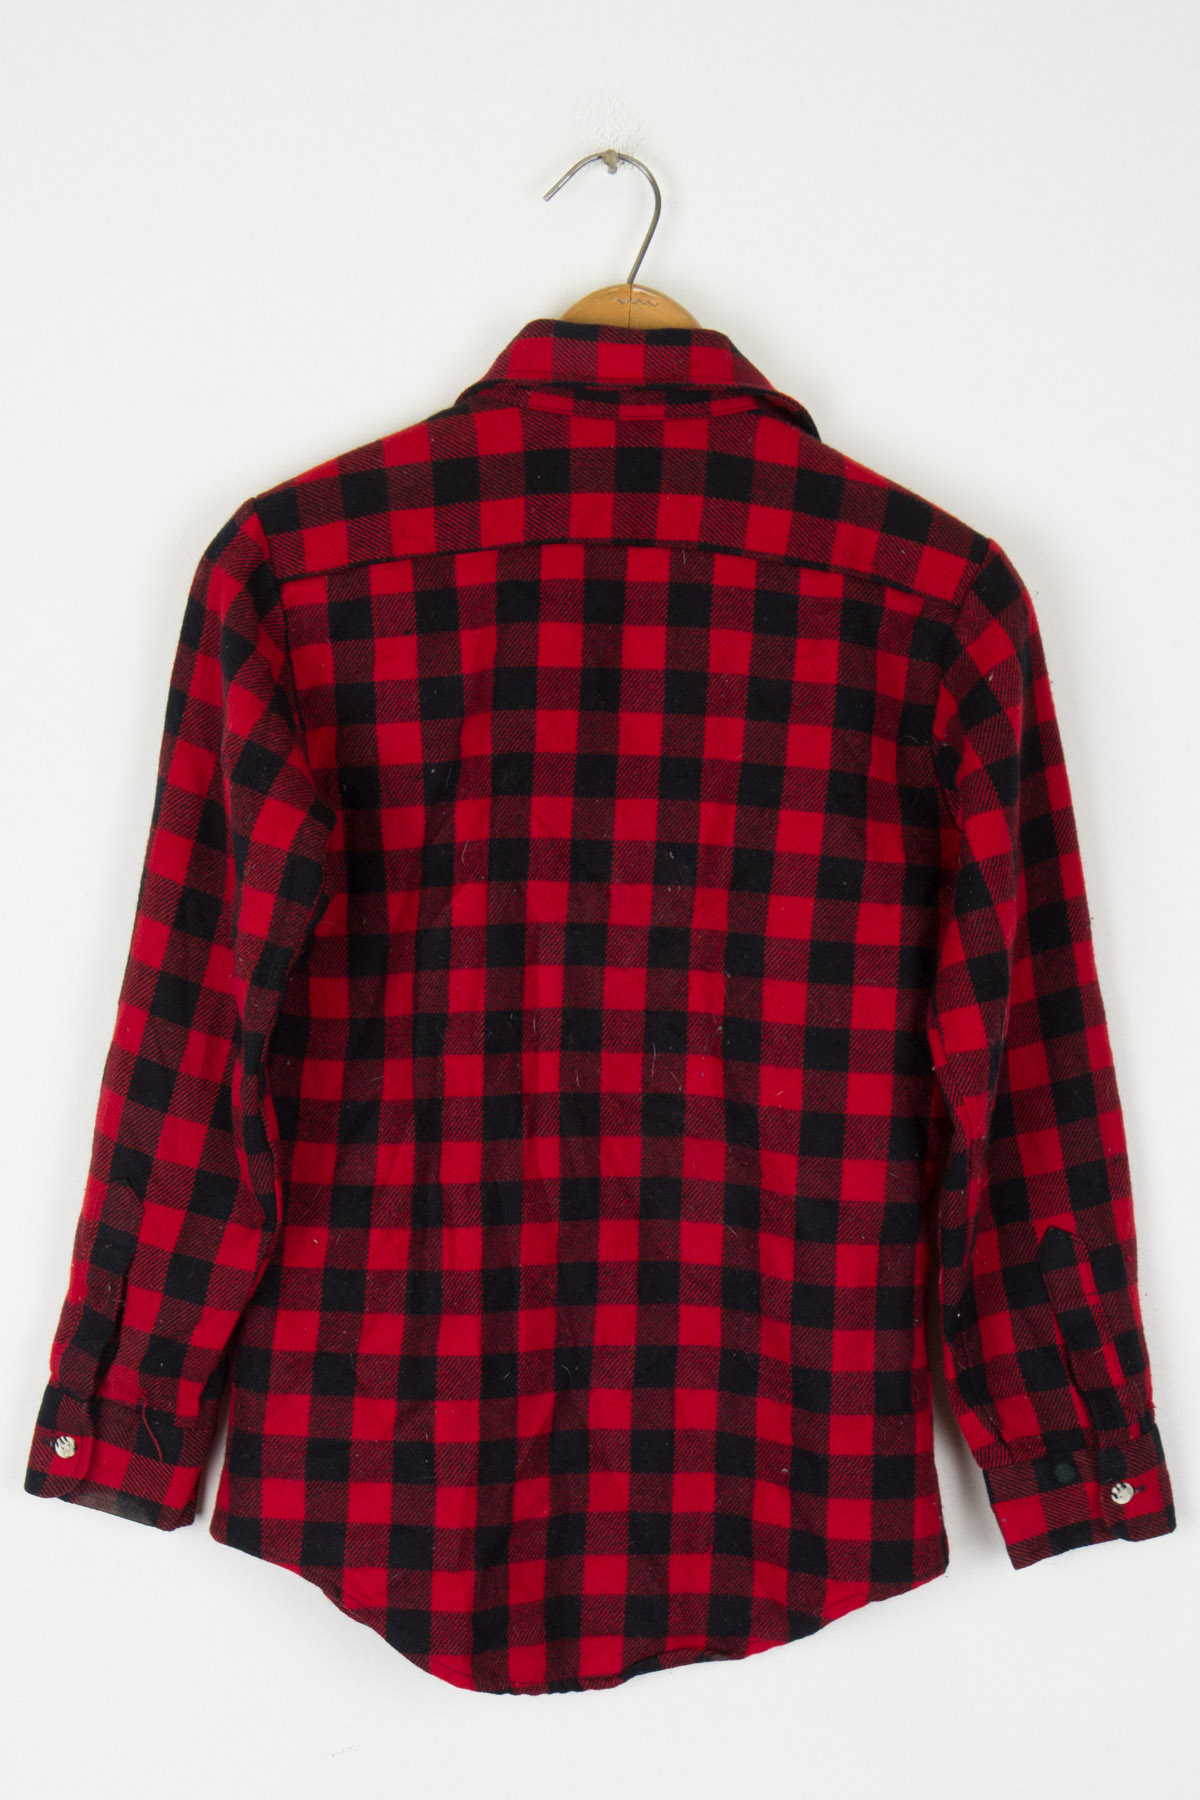 Kids Red Plaid Button Up